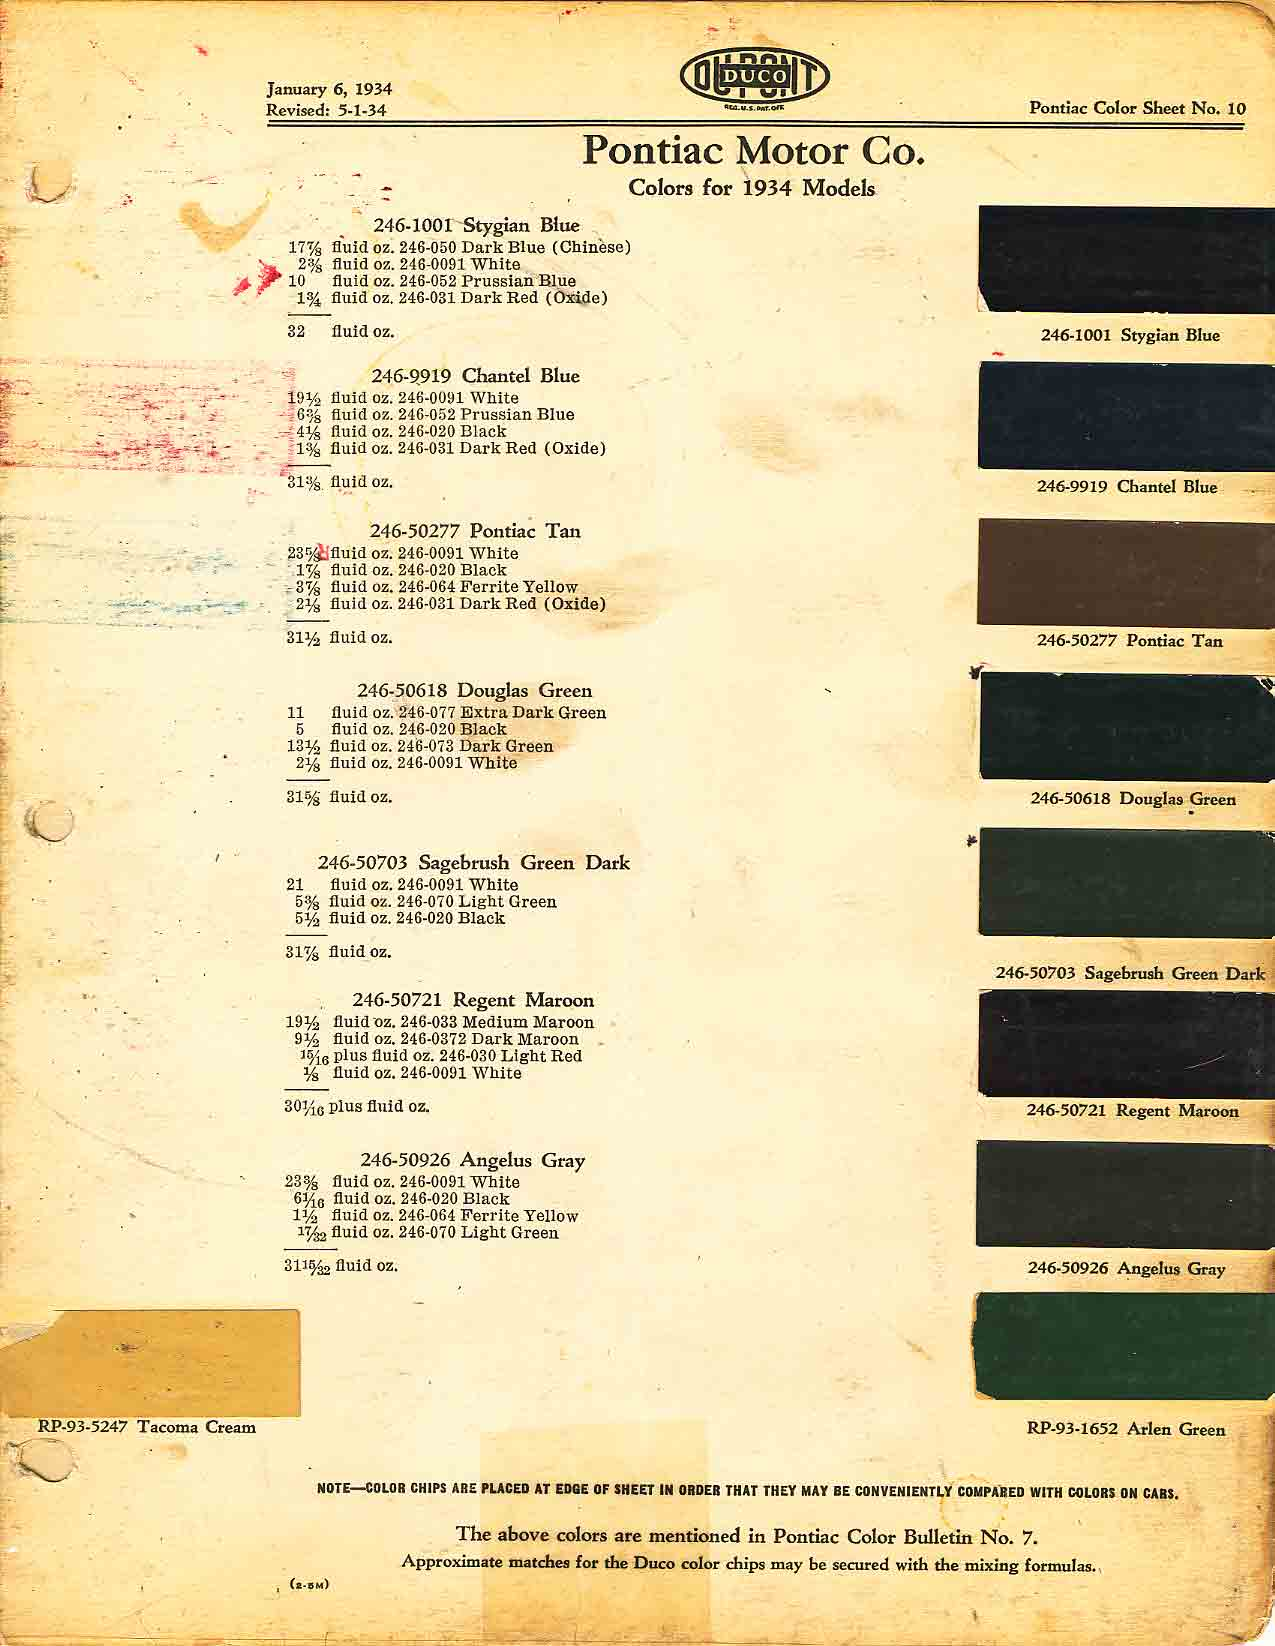 Color Code and Paint Color Chart for Pontiac for 1934